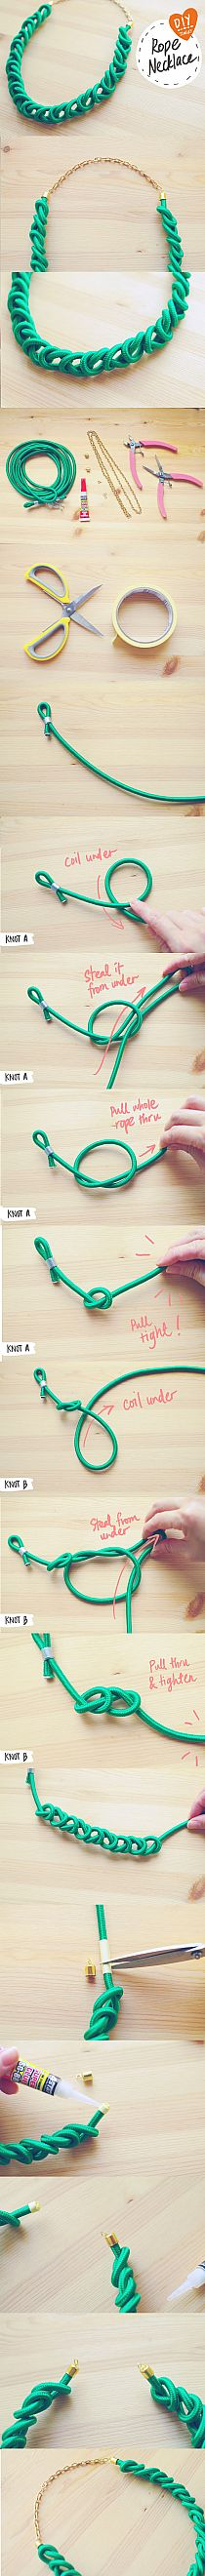 DIY Rope Bracelet, I think this could turn out really cute. I just need to find out where to get the right supplies...